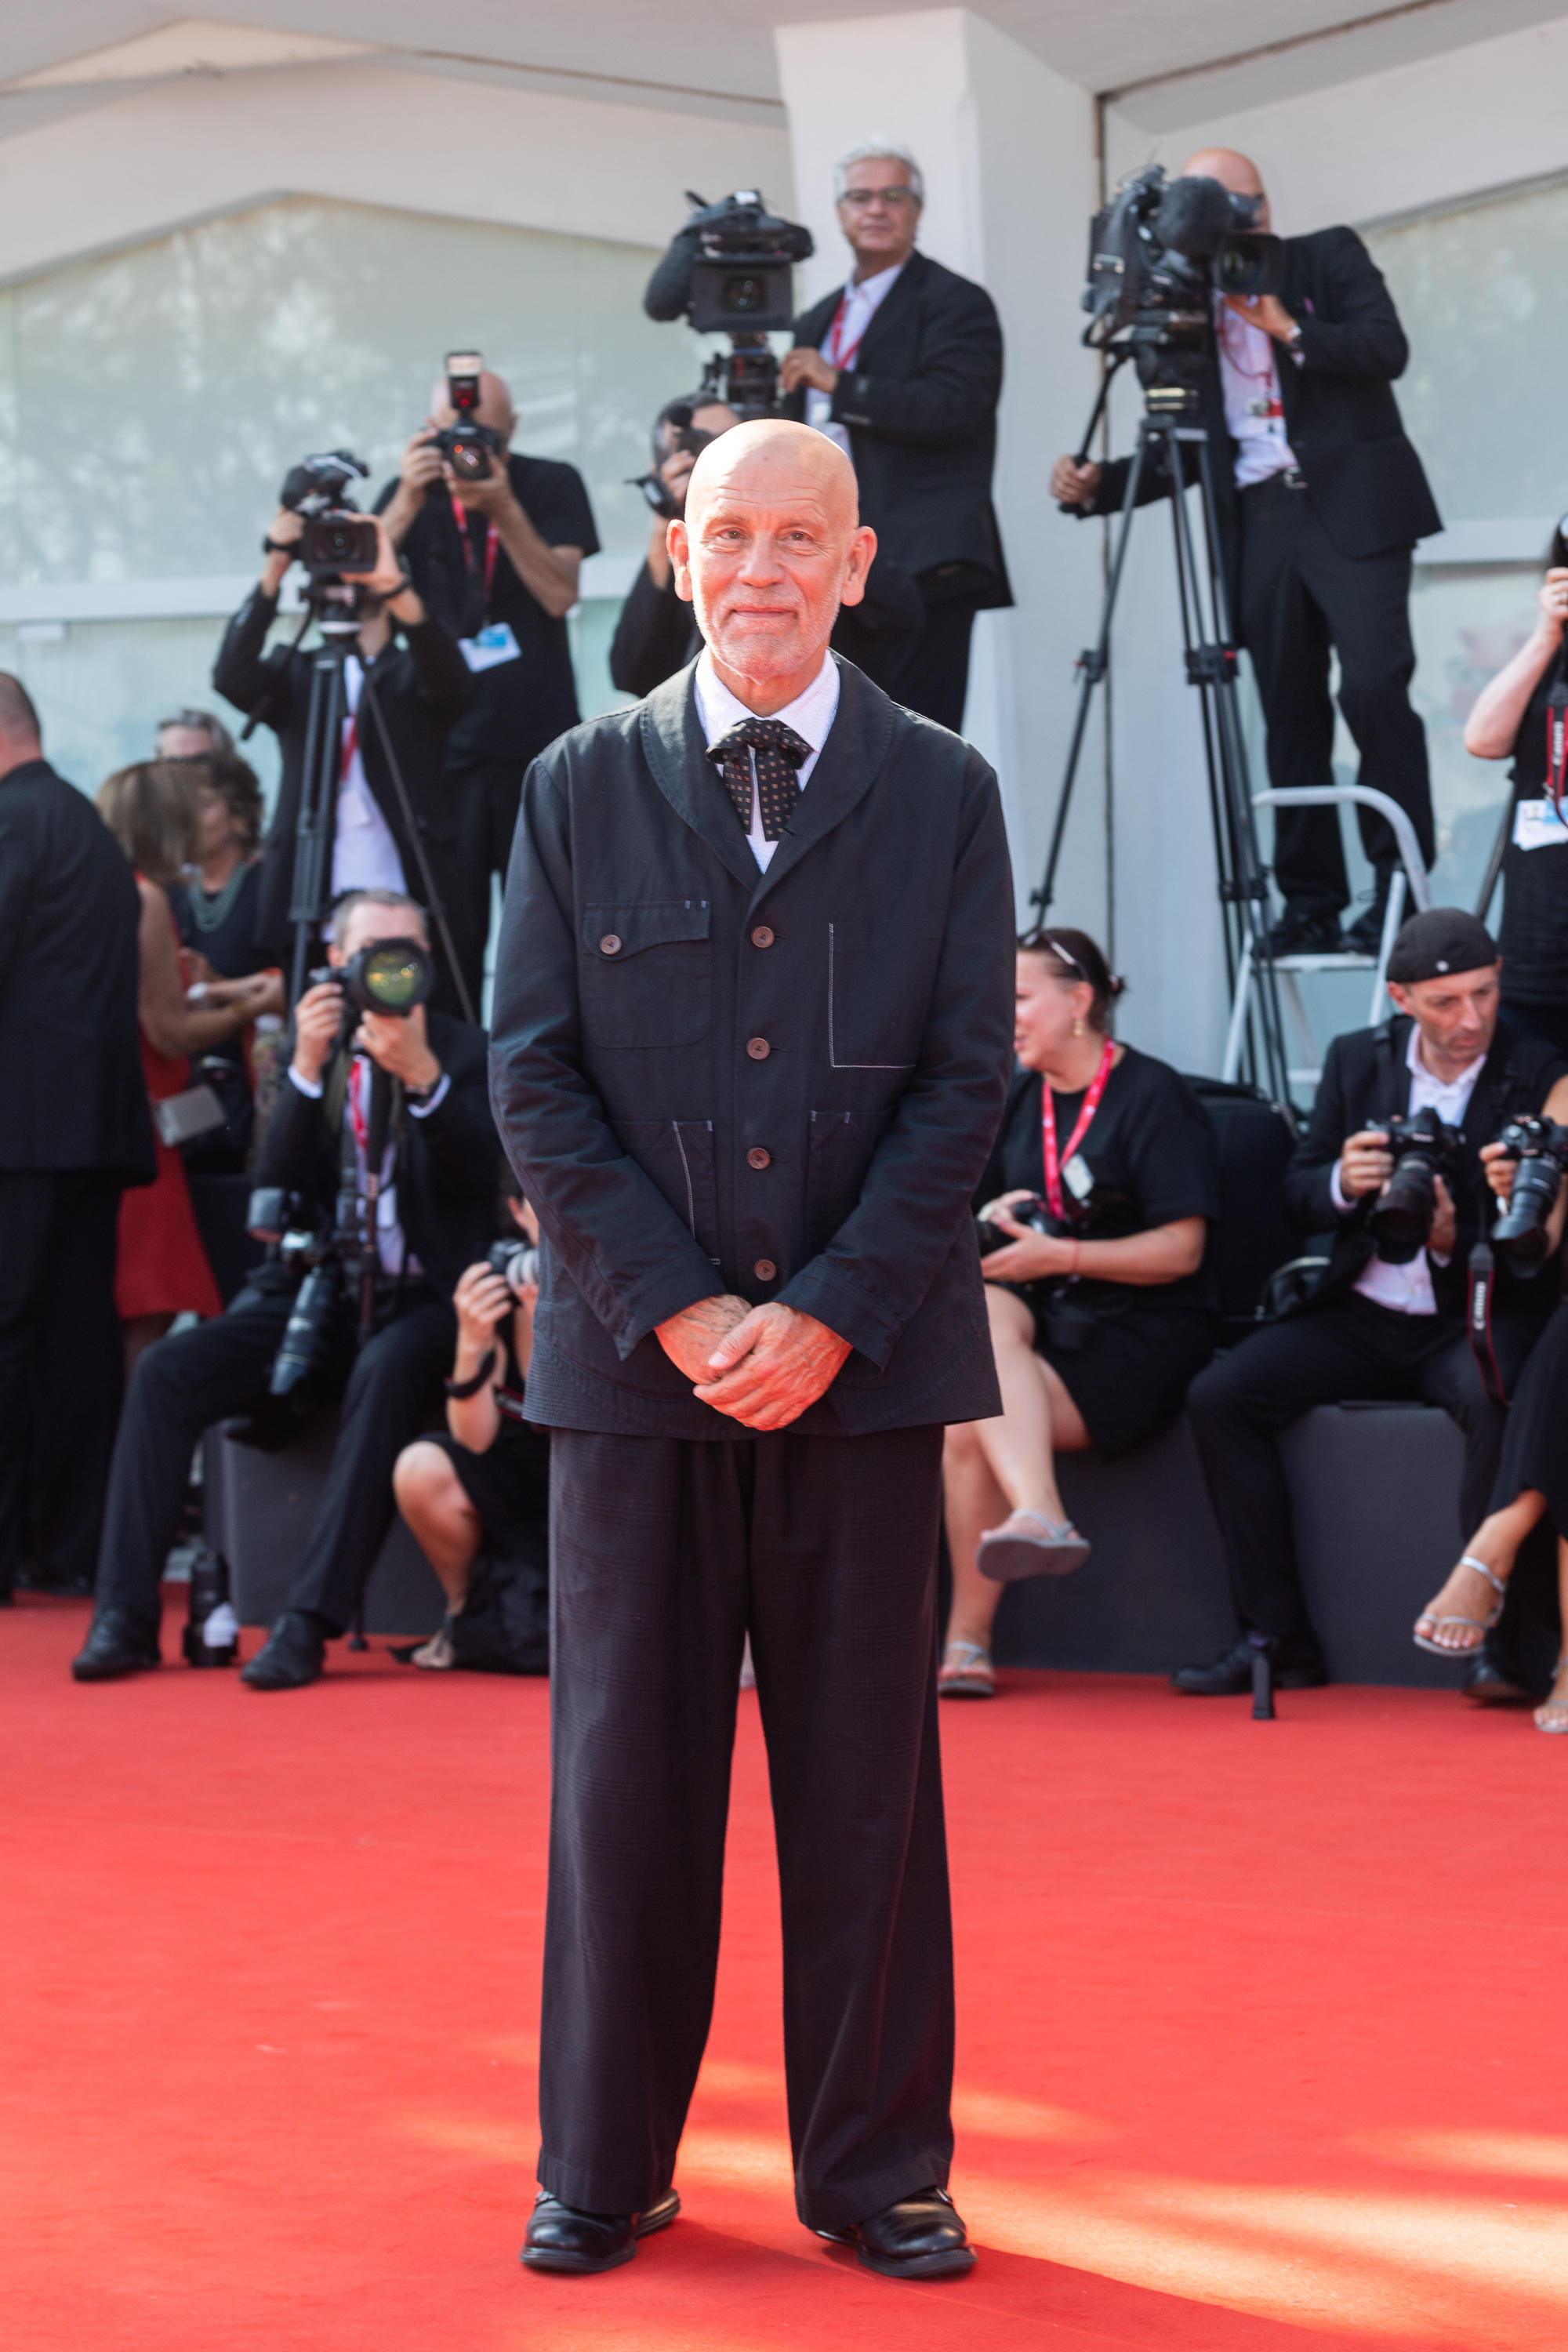 VENICE, Italy. 01st Sep, 2019. John Malkovich Attends The Red Carpet For The World Premiere Of The New Pope During The 76th Venice Film Festival At Palazzo Del Cinema On September 01, 2019 In Venice, Italy. КРЕДИТ